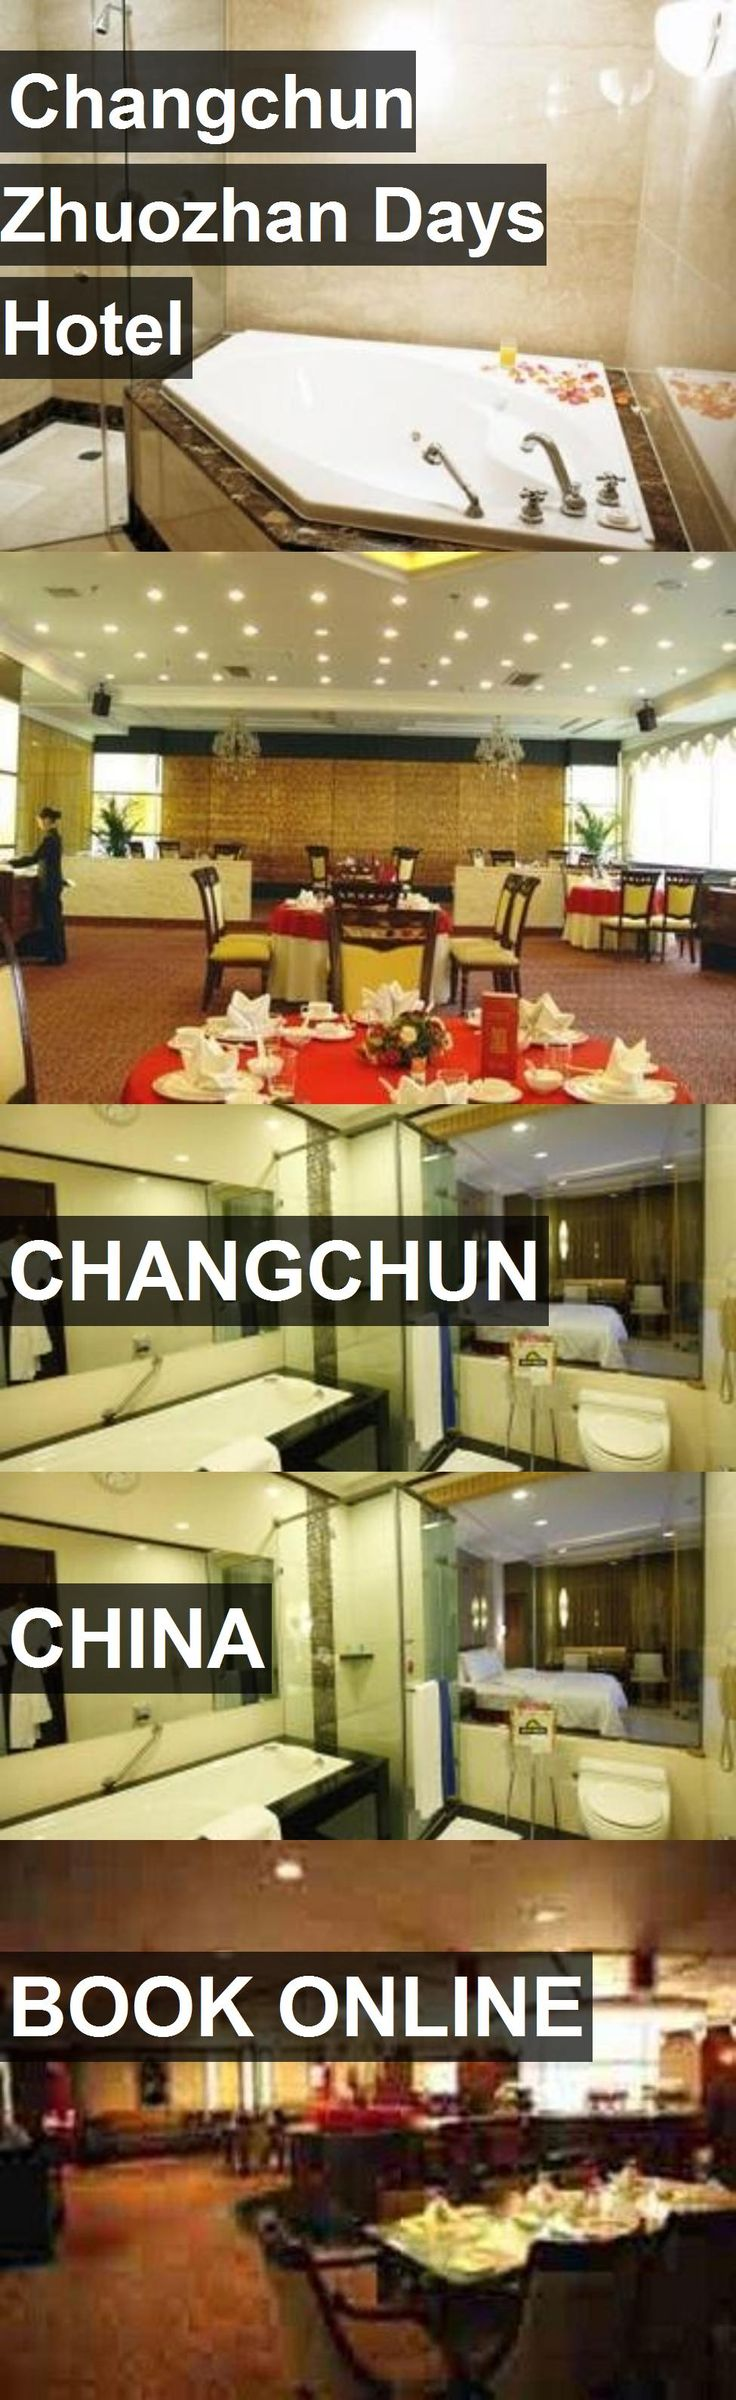 Hotel Changchun Zhuozhan Days Hotel in Changchun, China. For more information, photos, reviews and best prices please follow the link. #China #Changchun #ChangchunZhuozhanDaysHotel #hotel #travel #vacation